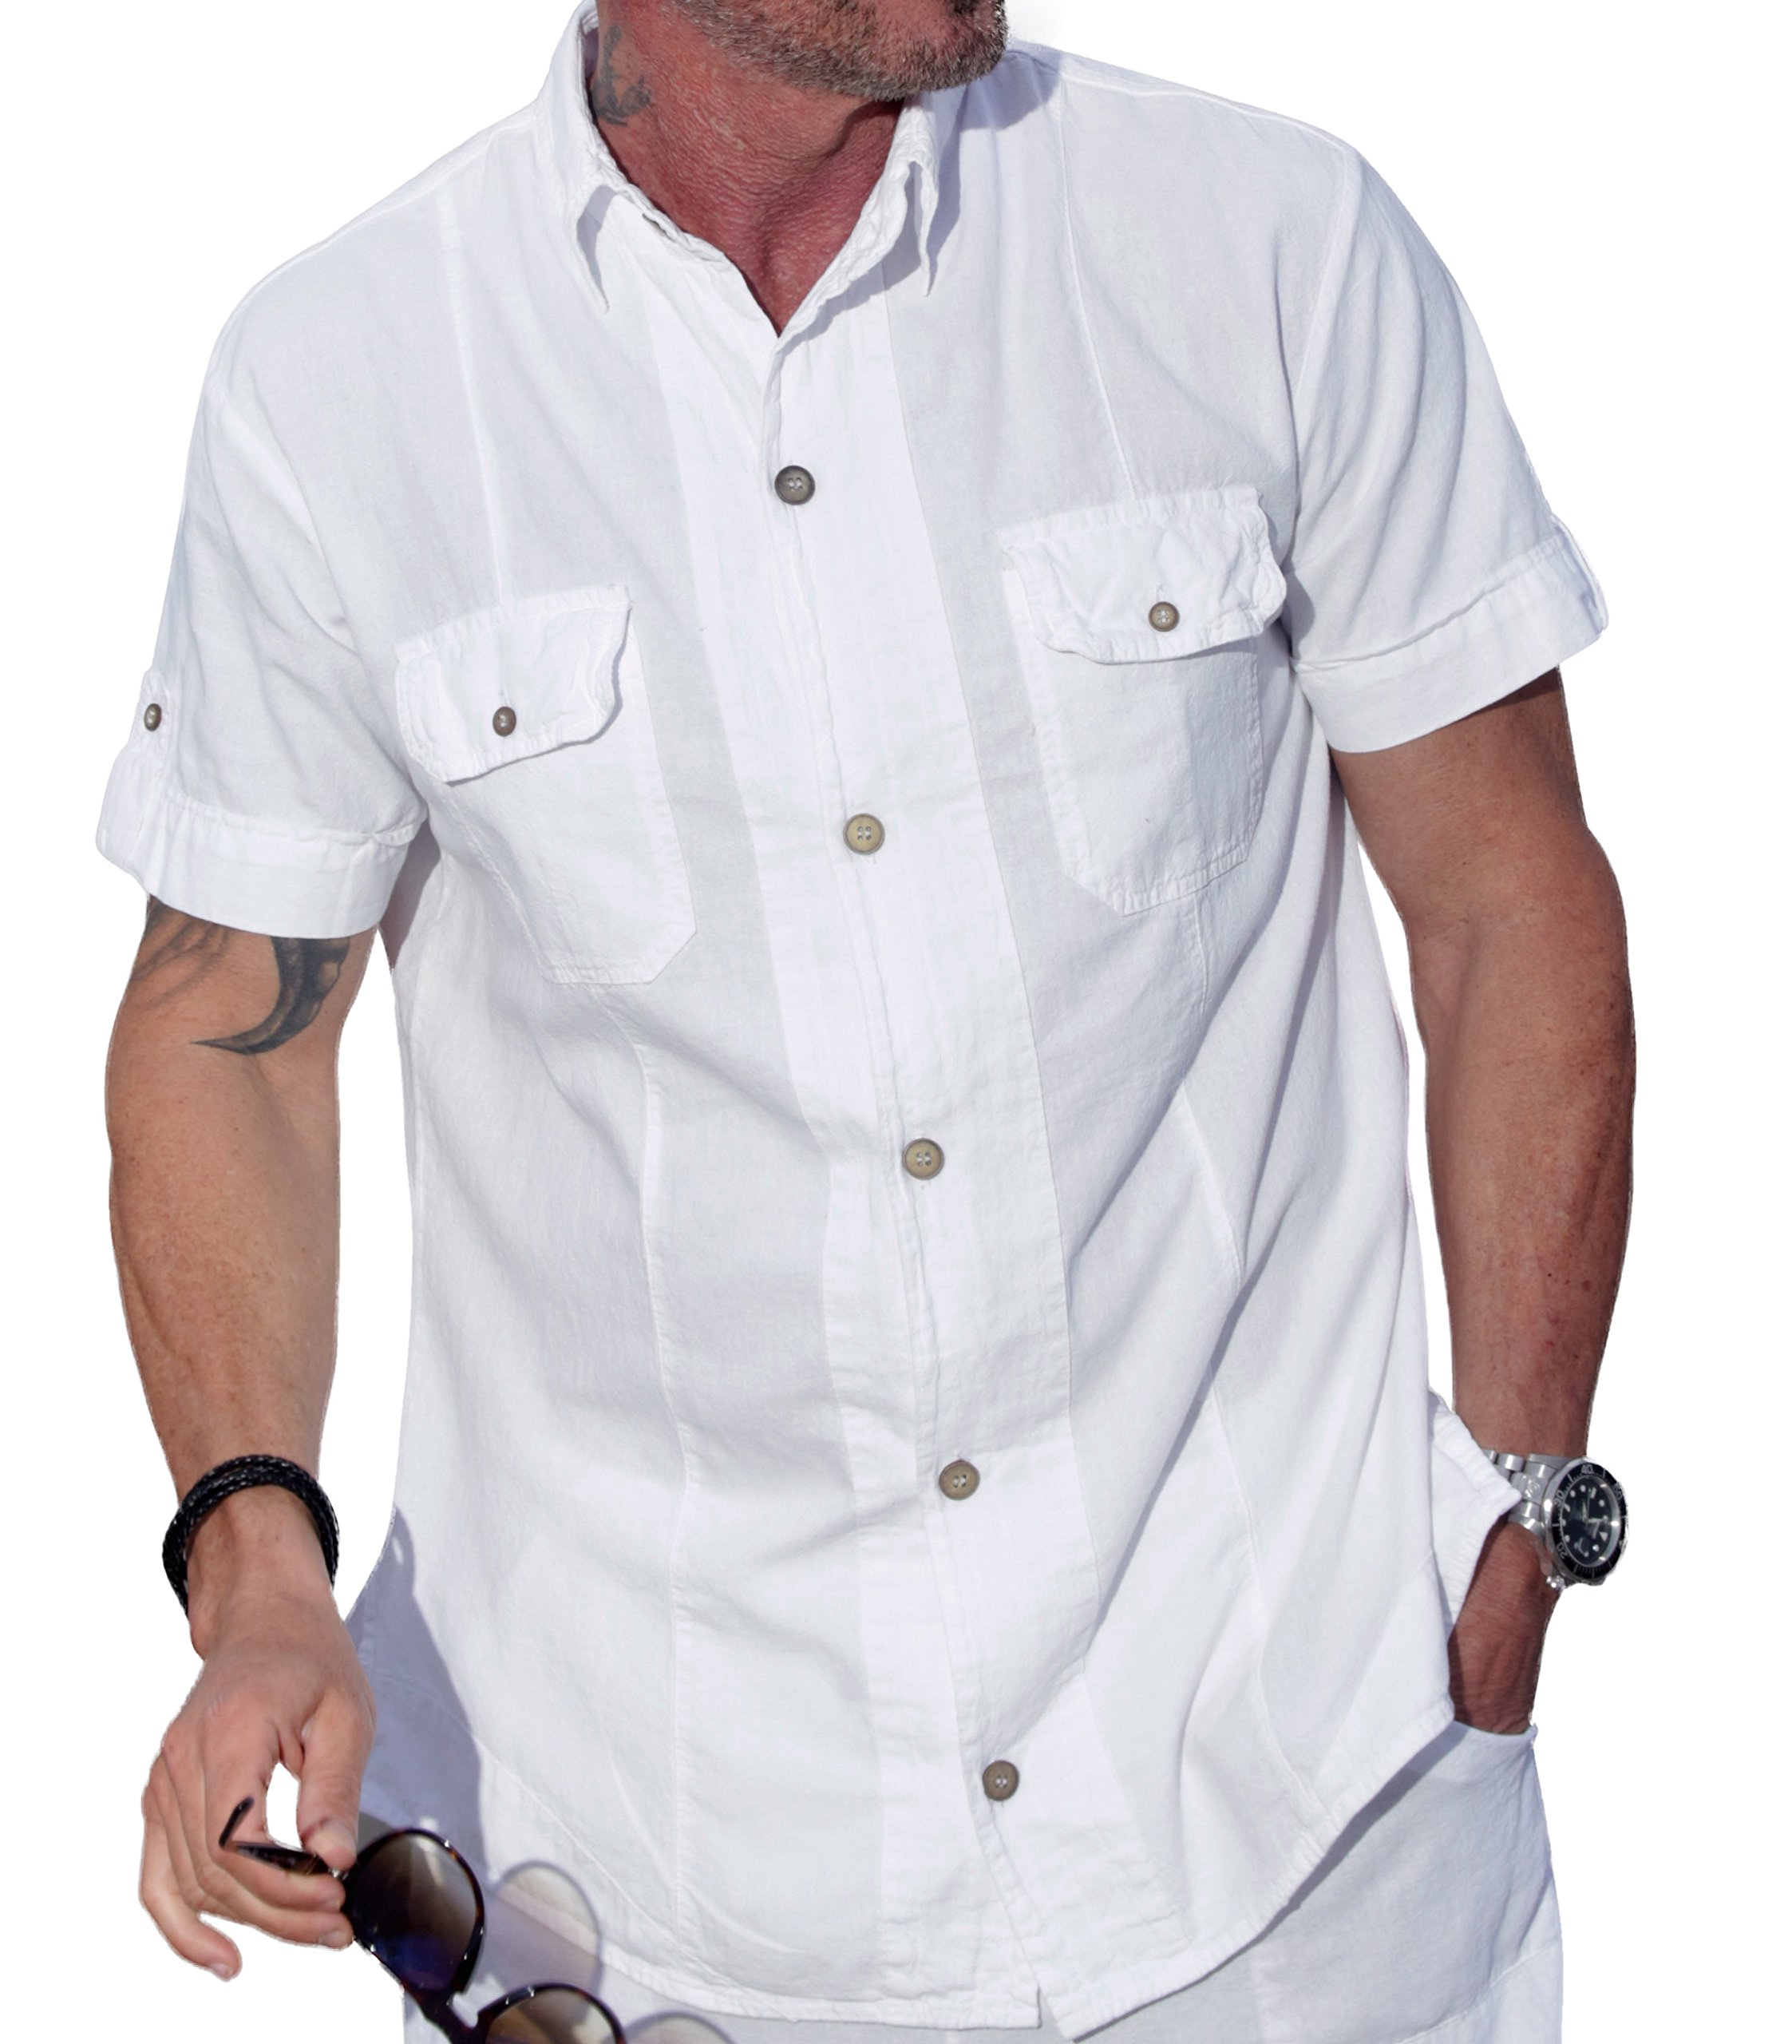 M&B USA Cotton White Natural Two Pocket Short-Sleeve Button Down Casual Shirt (X-Large, White)